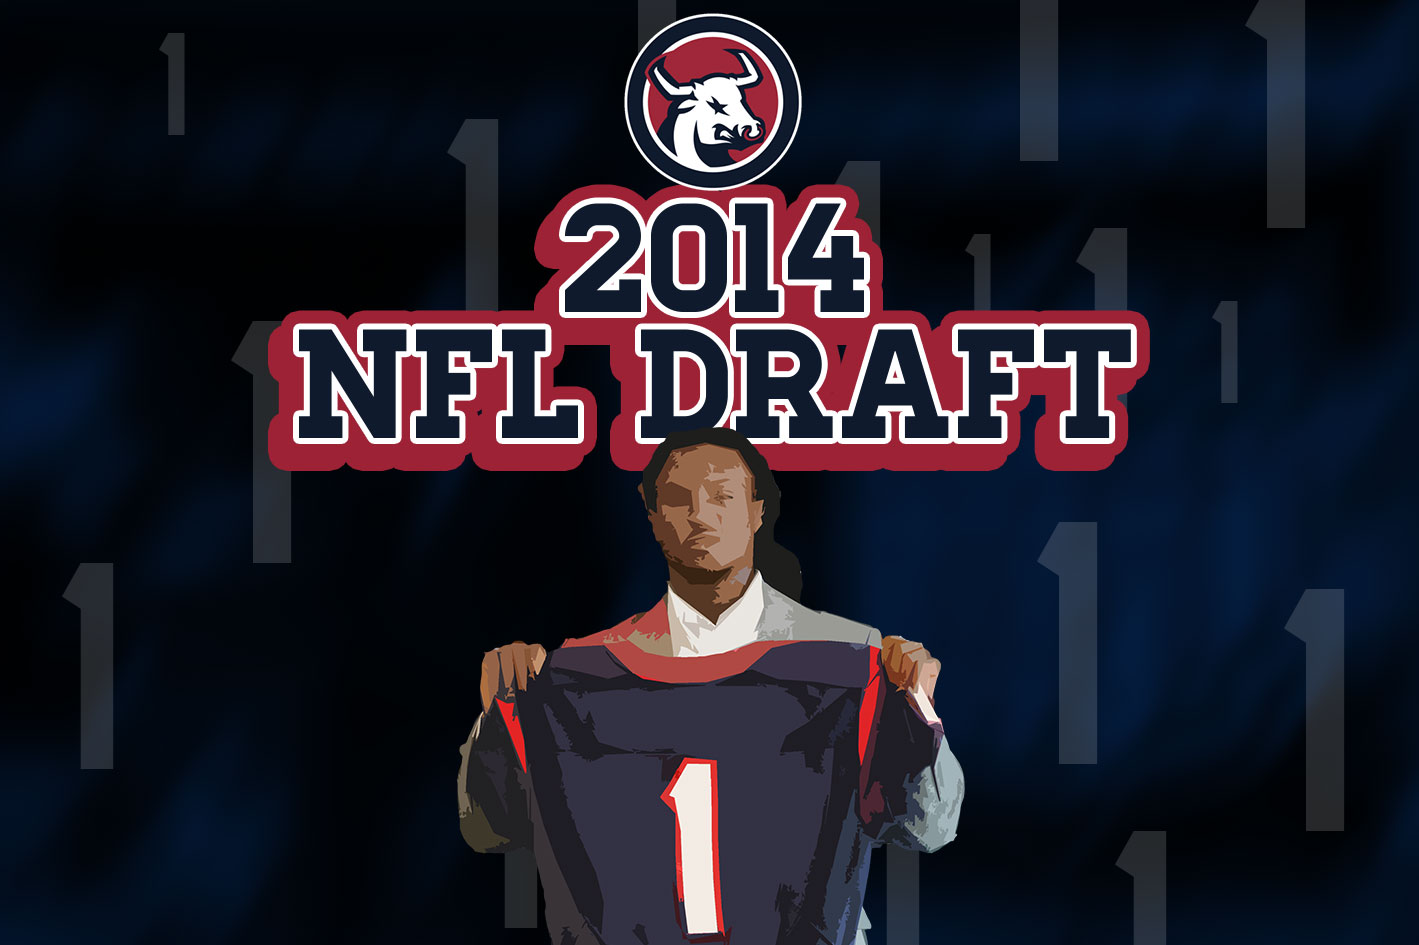 The third and final day of the 2014 NFL Draft is here.